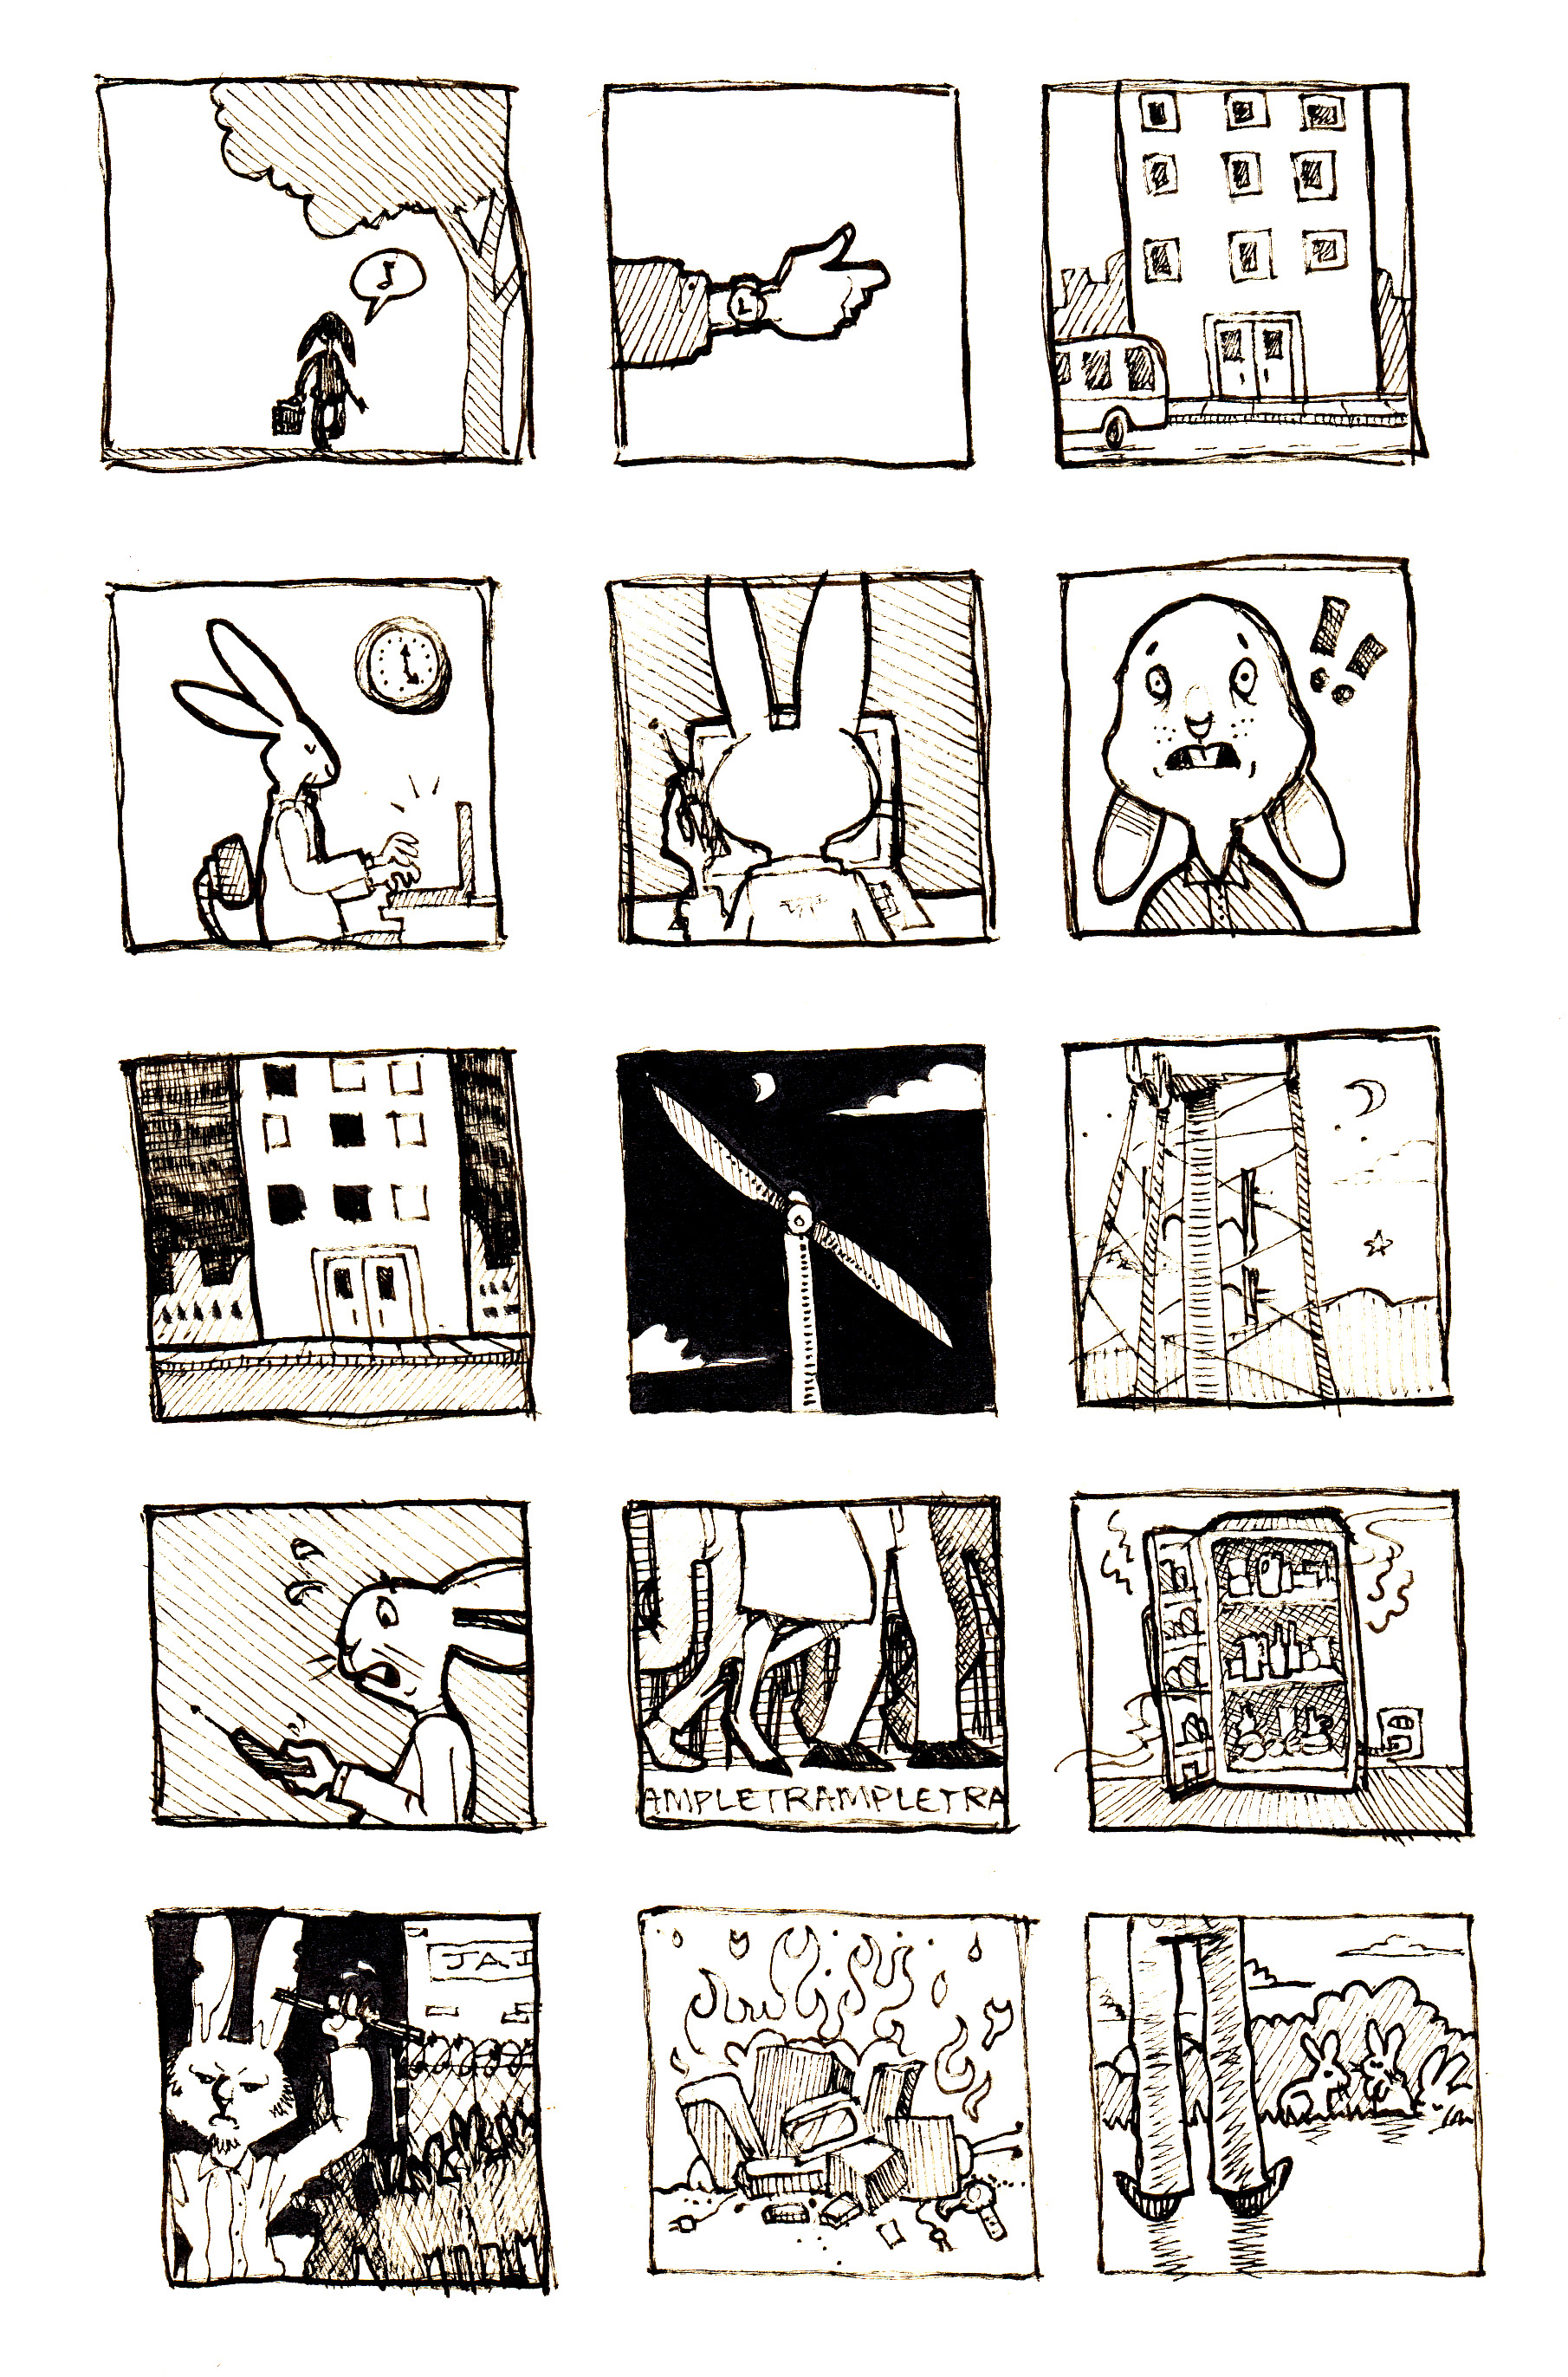 storyboard in thesis This is my storyboard for my thesis at lmu it is called couleur and it is about a  curious little dog that finds glasses which allow him to see and spread color.